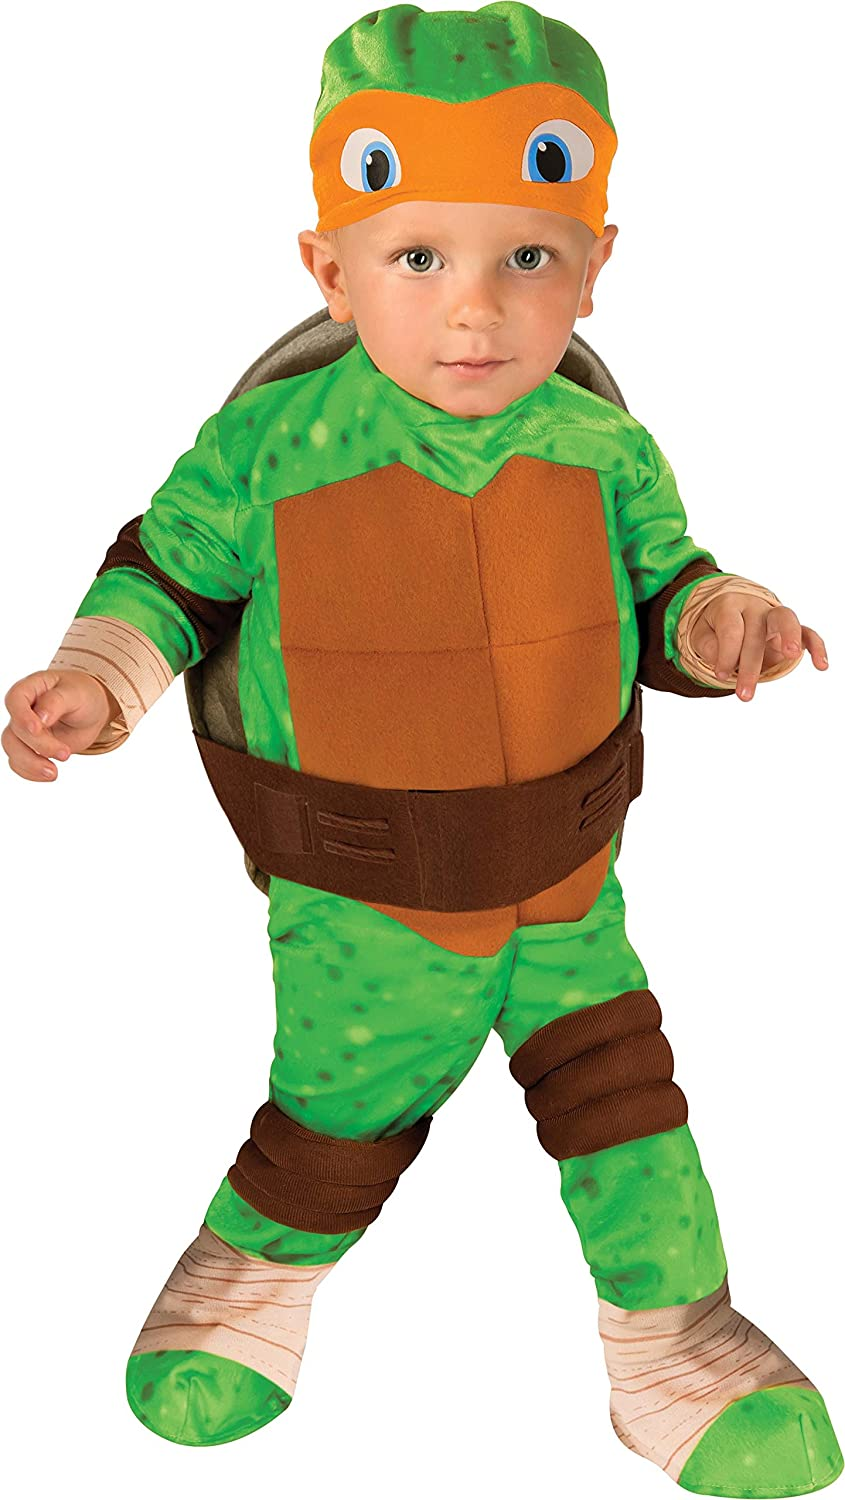 Amazon.com Nickelodeon Teenage Mutant Ninja Turtles Michelangelo Romper Shell And Headpiece Clothing Sc 1 St Amazon.com  sc 1 st  Germanpascual.Com & Ninja Turtle Costume For Baby u0026 Baby Raphael Costume - Teenage ...